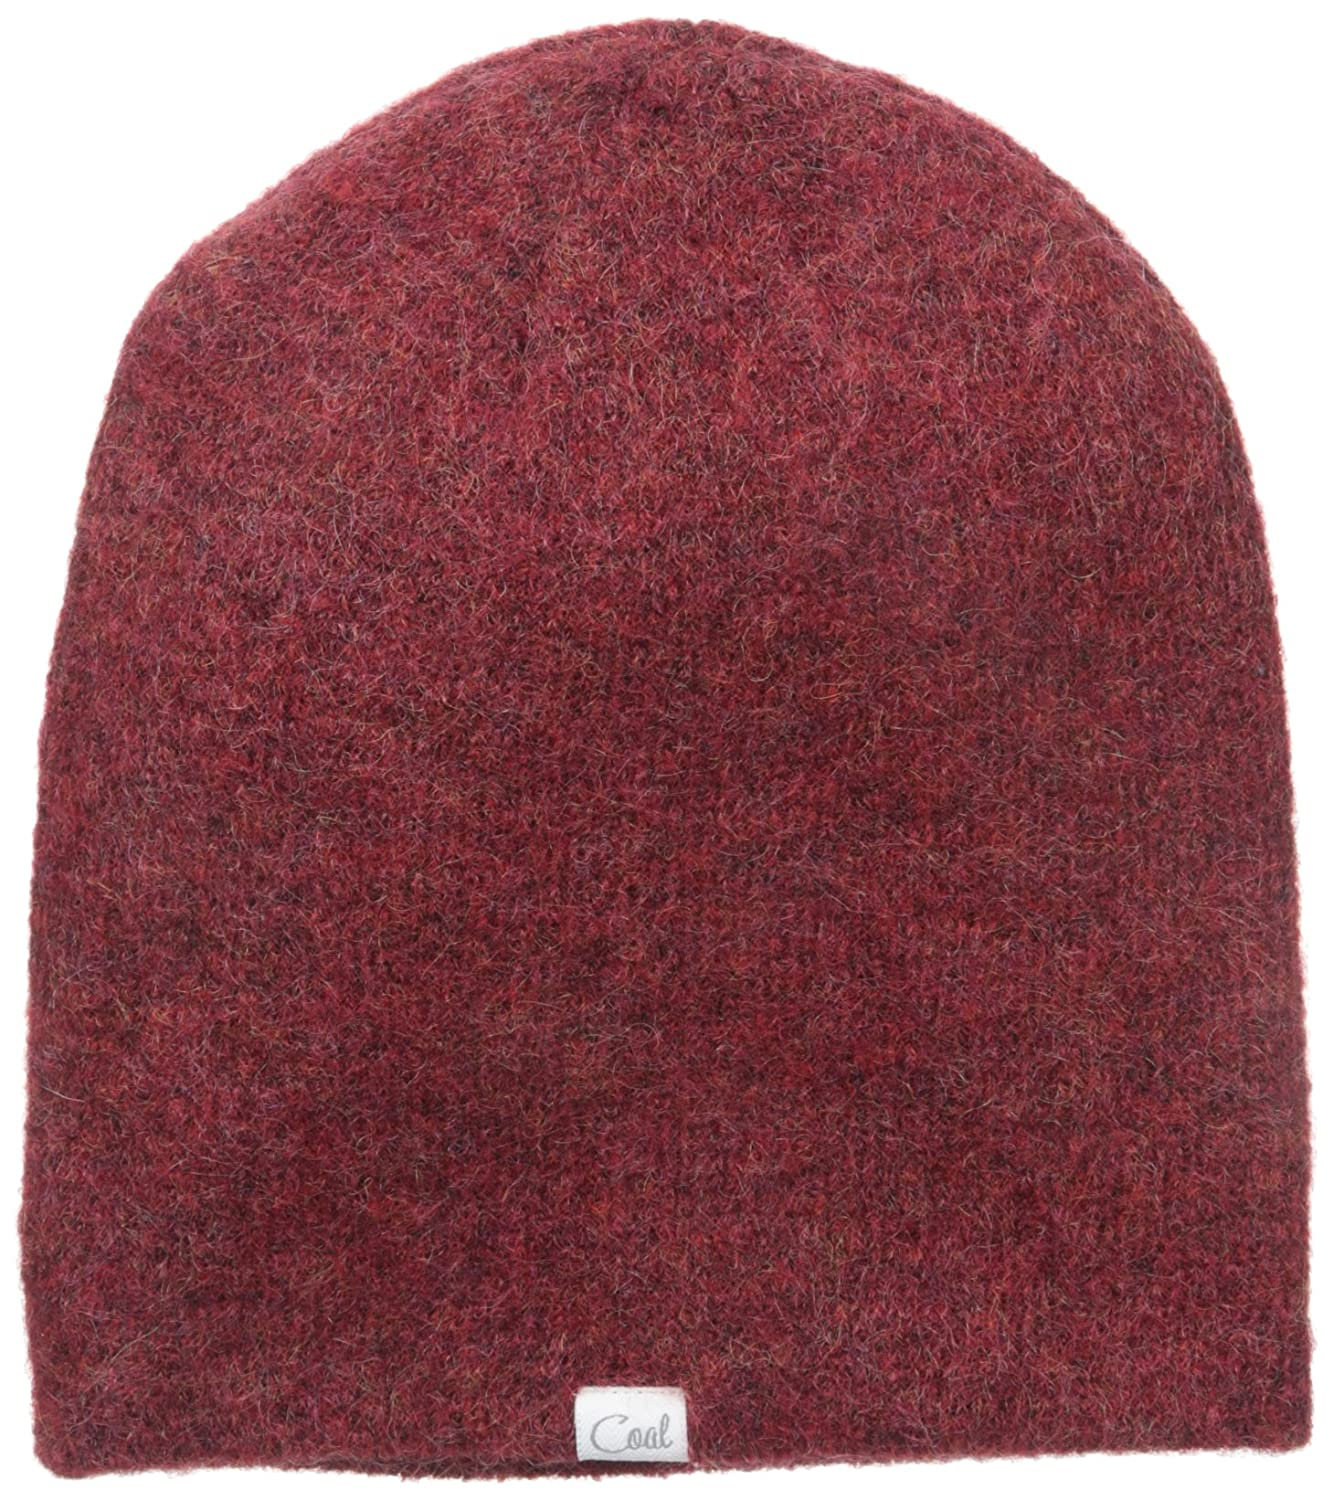 949d9f0311a Coal Women s The Ruby Ribbed Slouchy Beanie